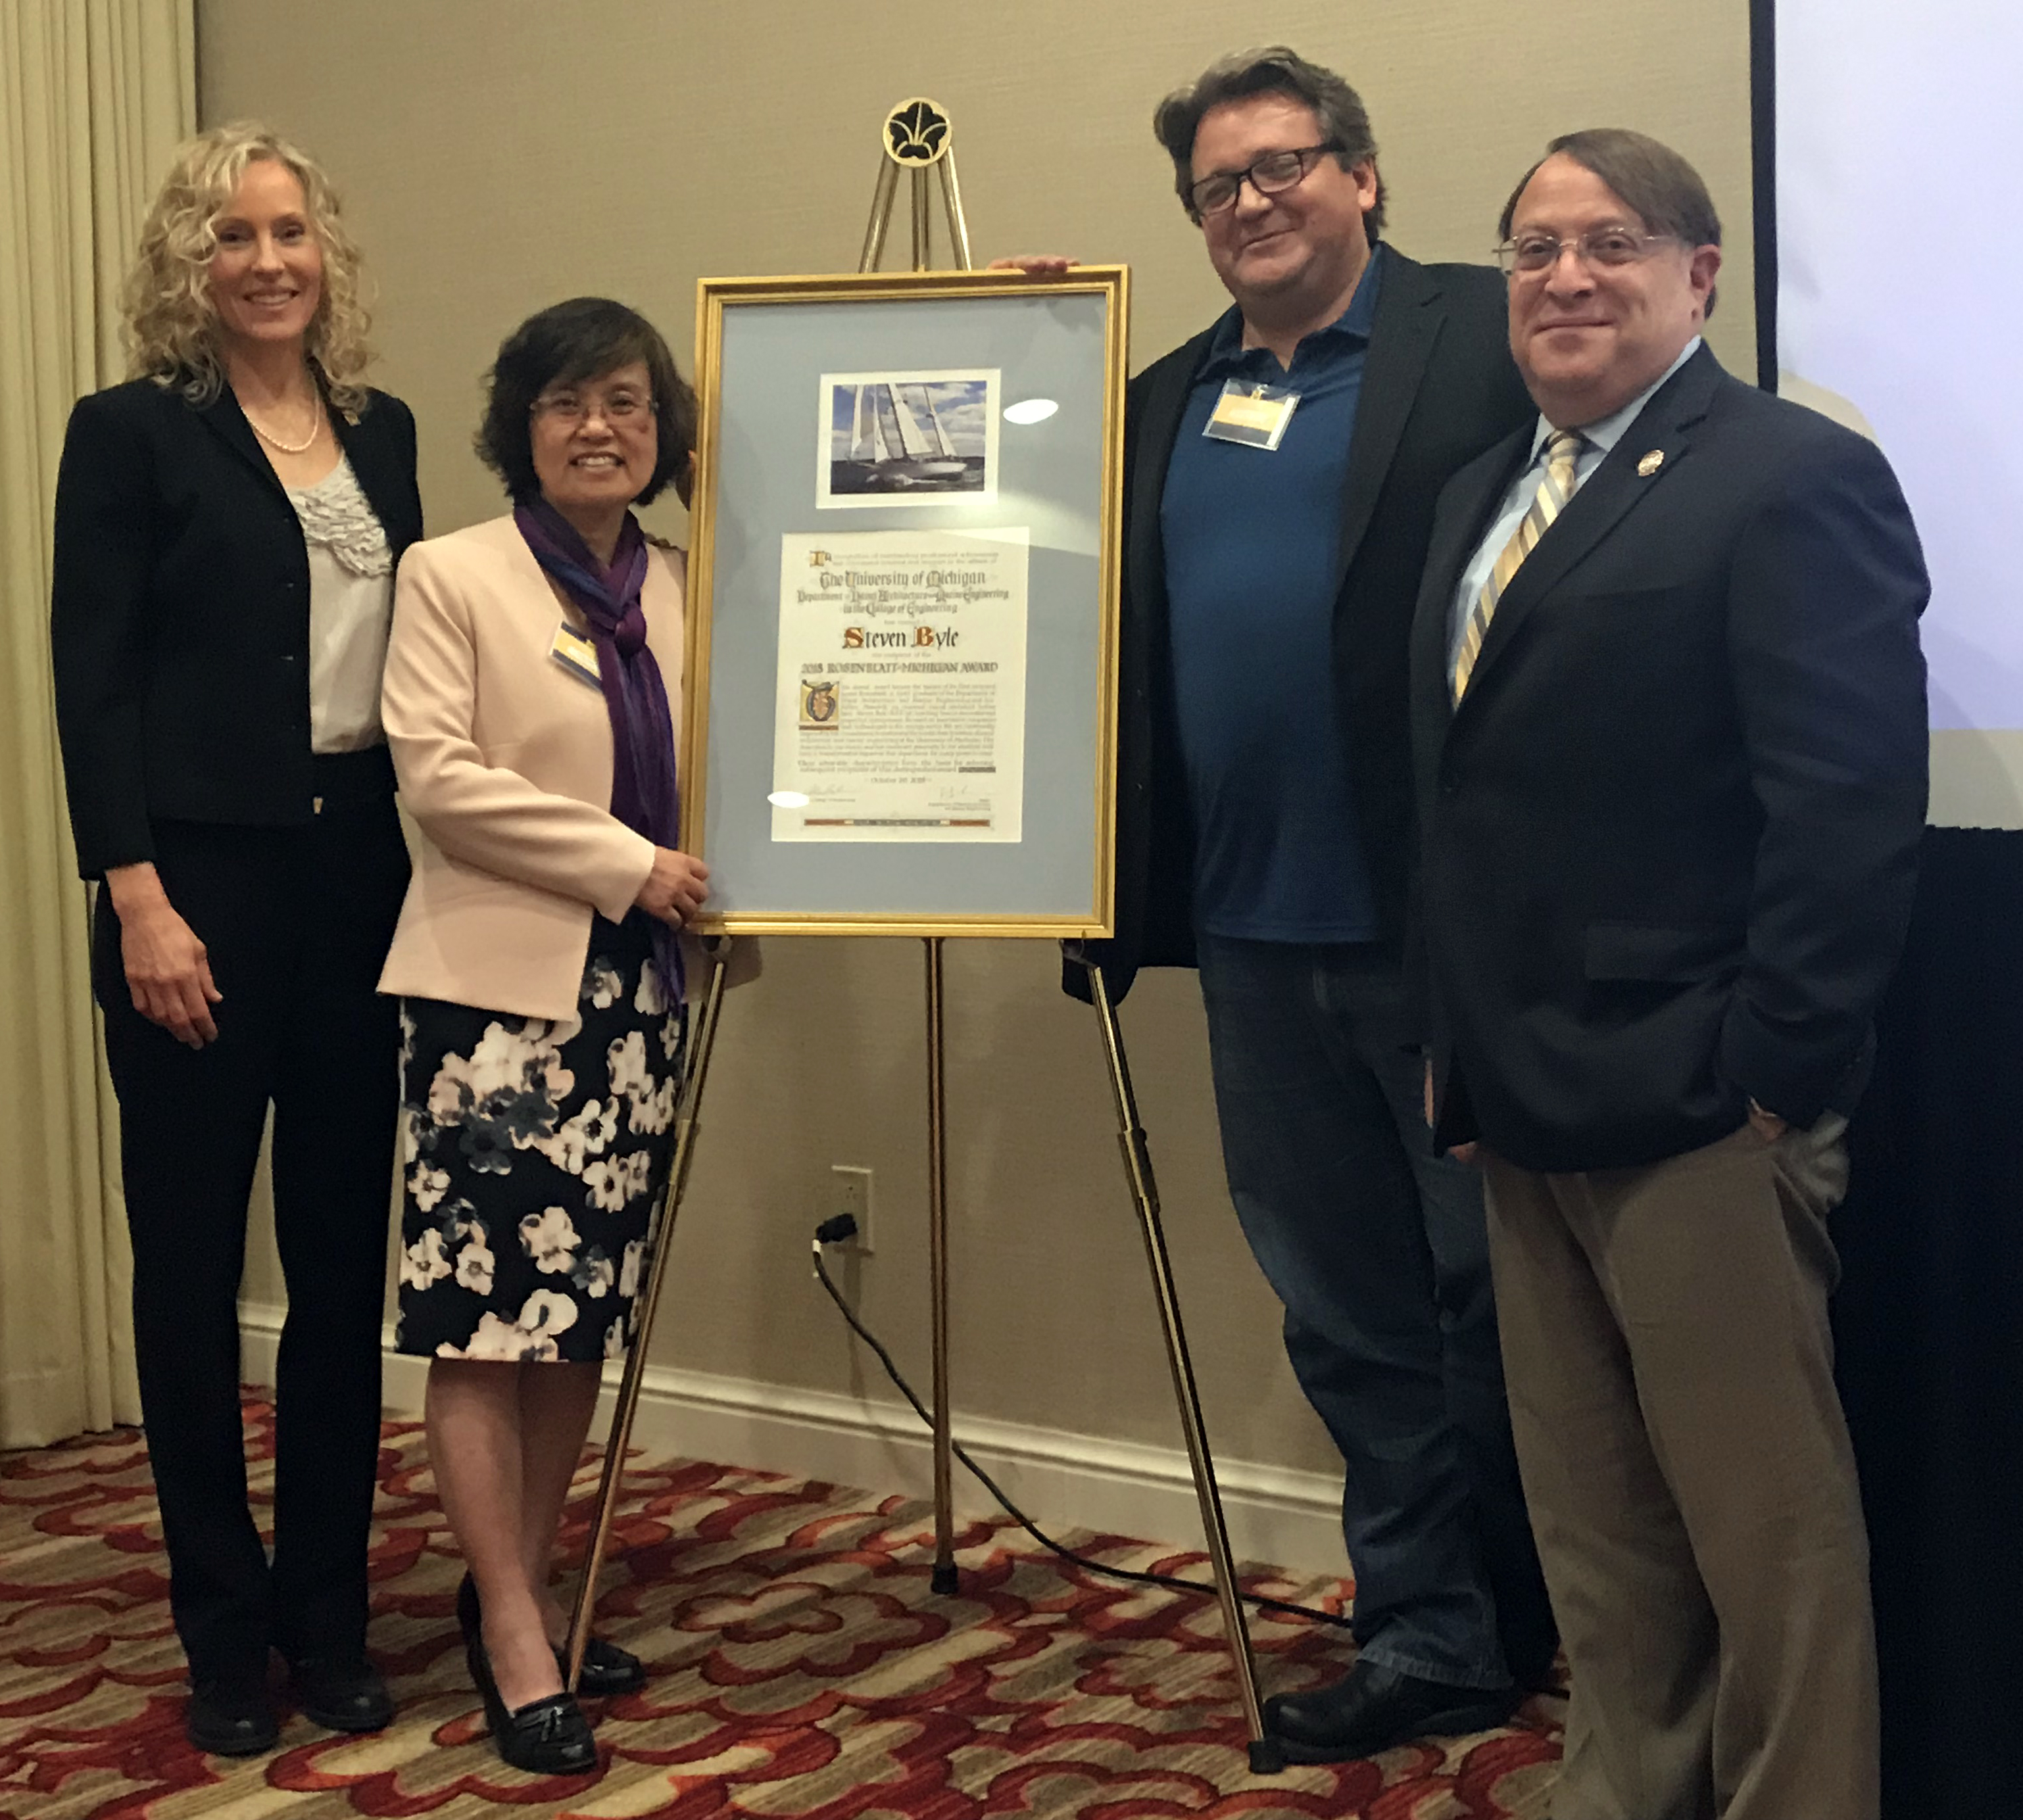 Steven Byle, with Connie Savander, Jing Sun, and Bruce Rosenblatt, receiving the Rosenblatt Award at the SNAME Annual Meeting in 2018